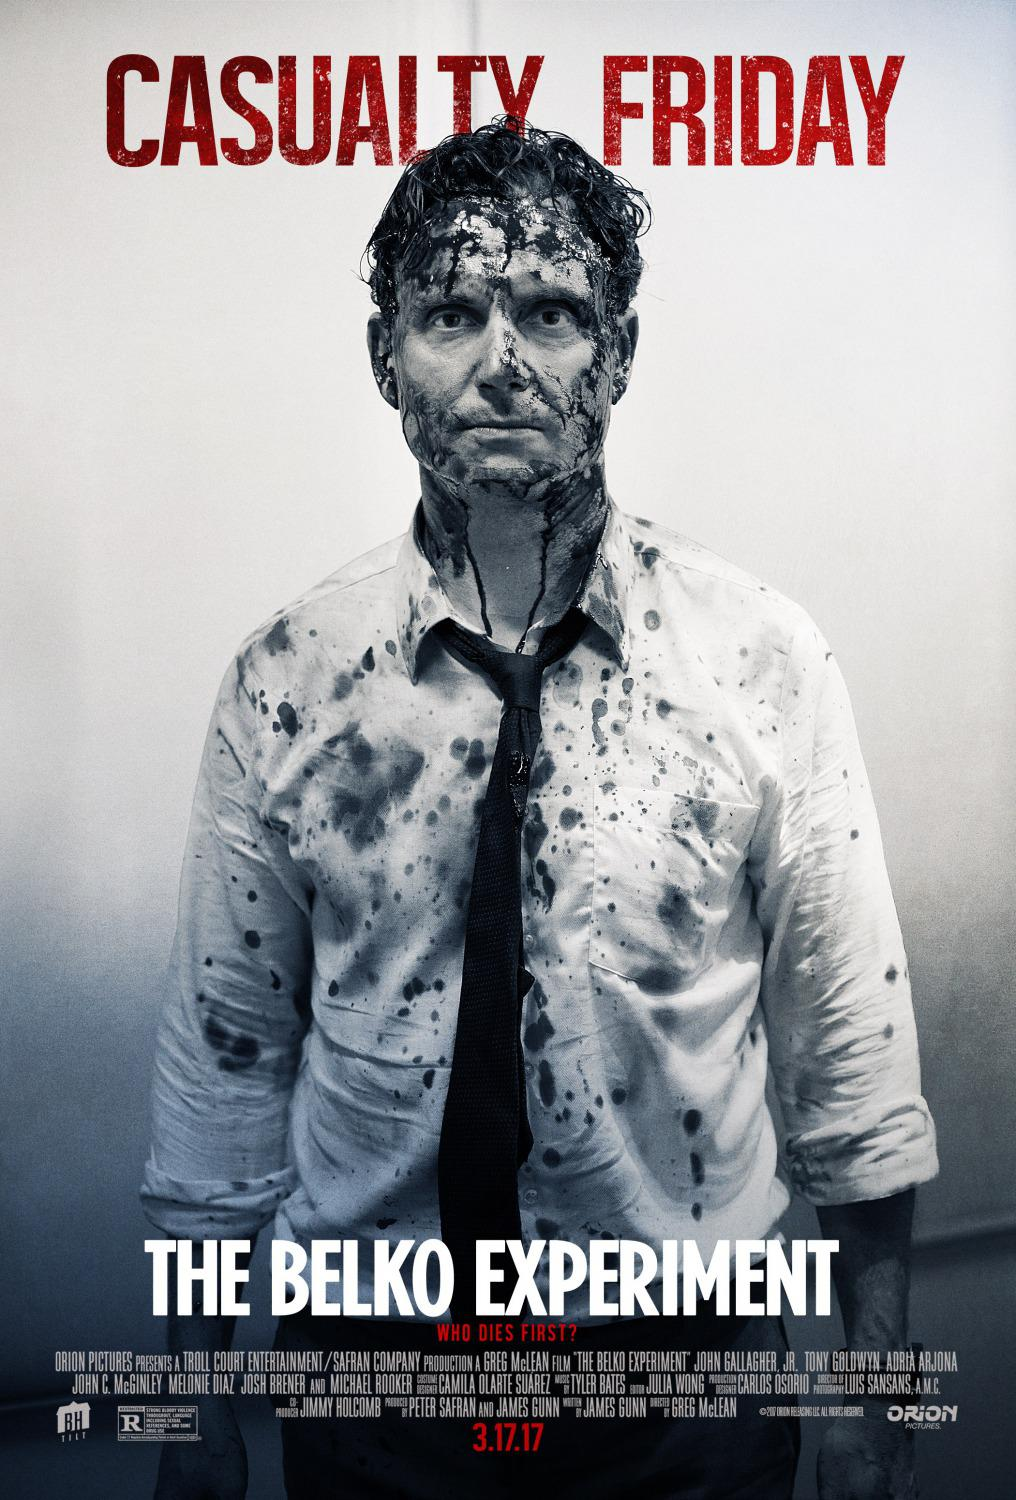 Belko experiment - film poster - casually friday